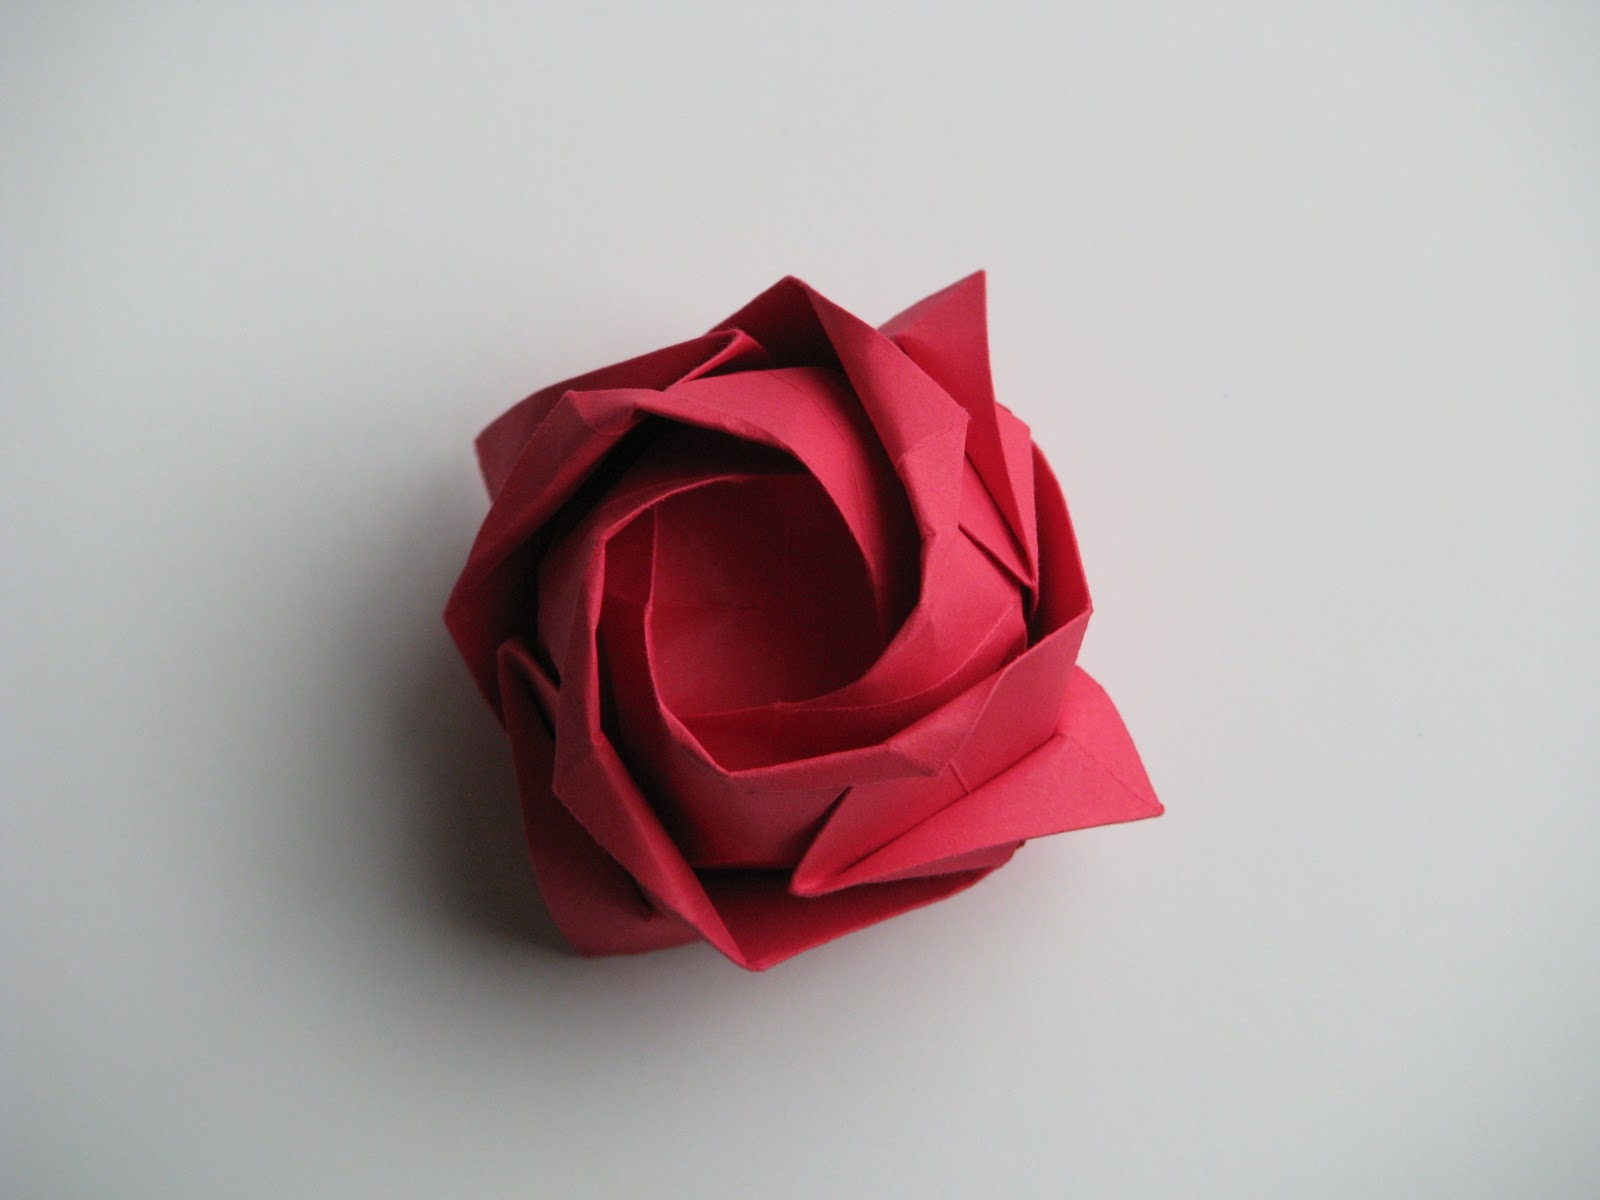 Origami Rose Wallpaper High Definition High Quality Widescreen